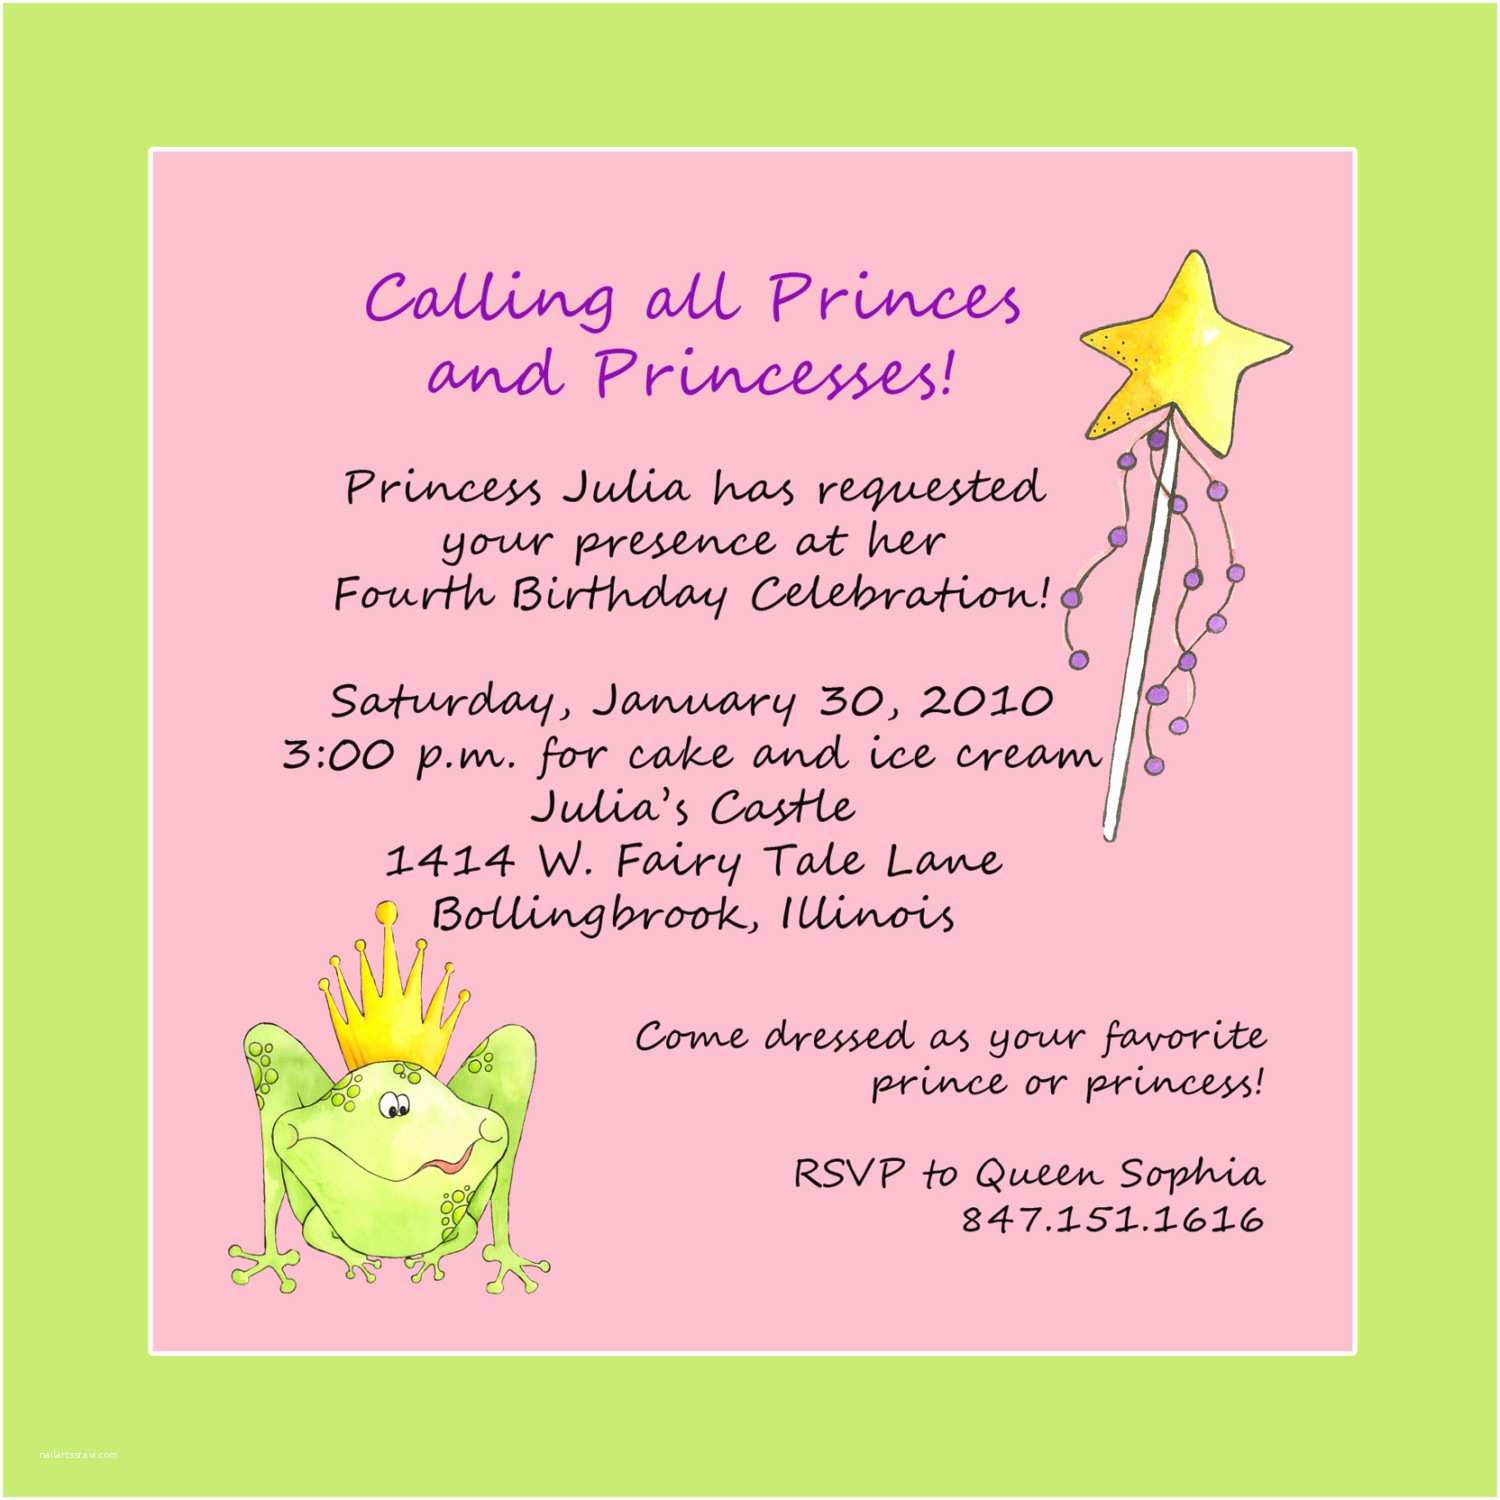 Design Party Invitations top 12 Birthday Party Invitations Wording